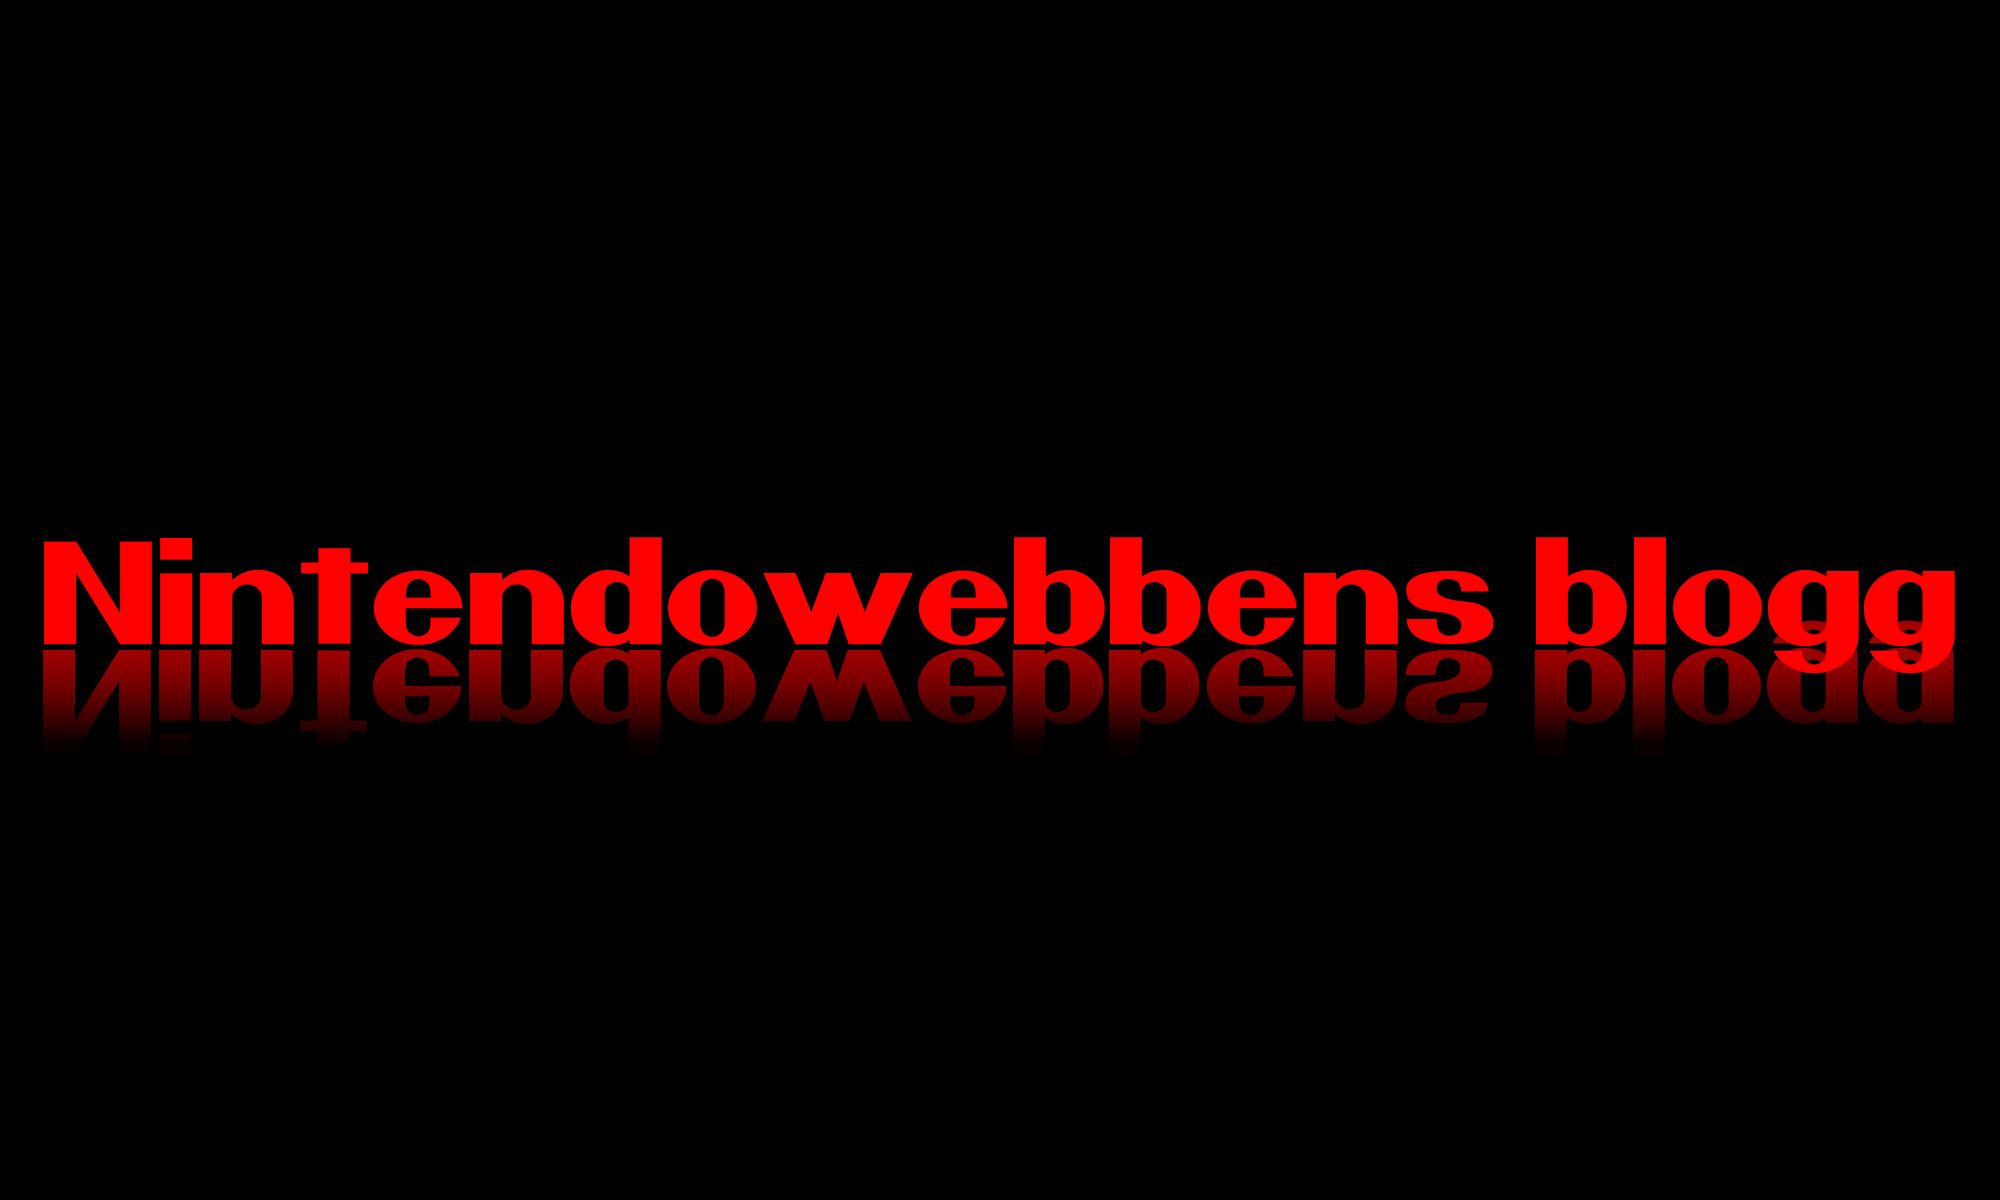 Nintendowebbens blogg